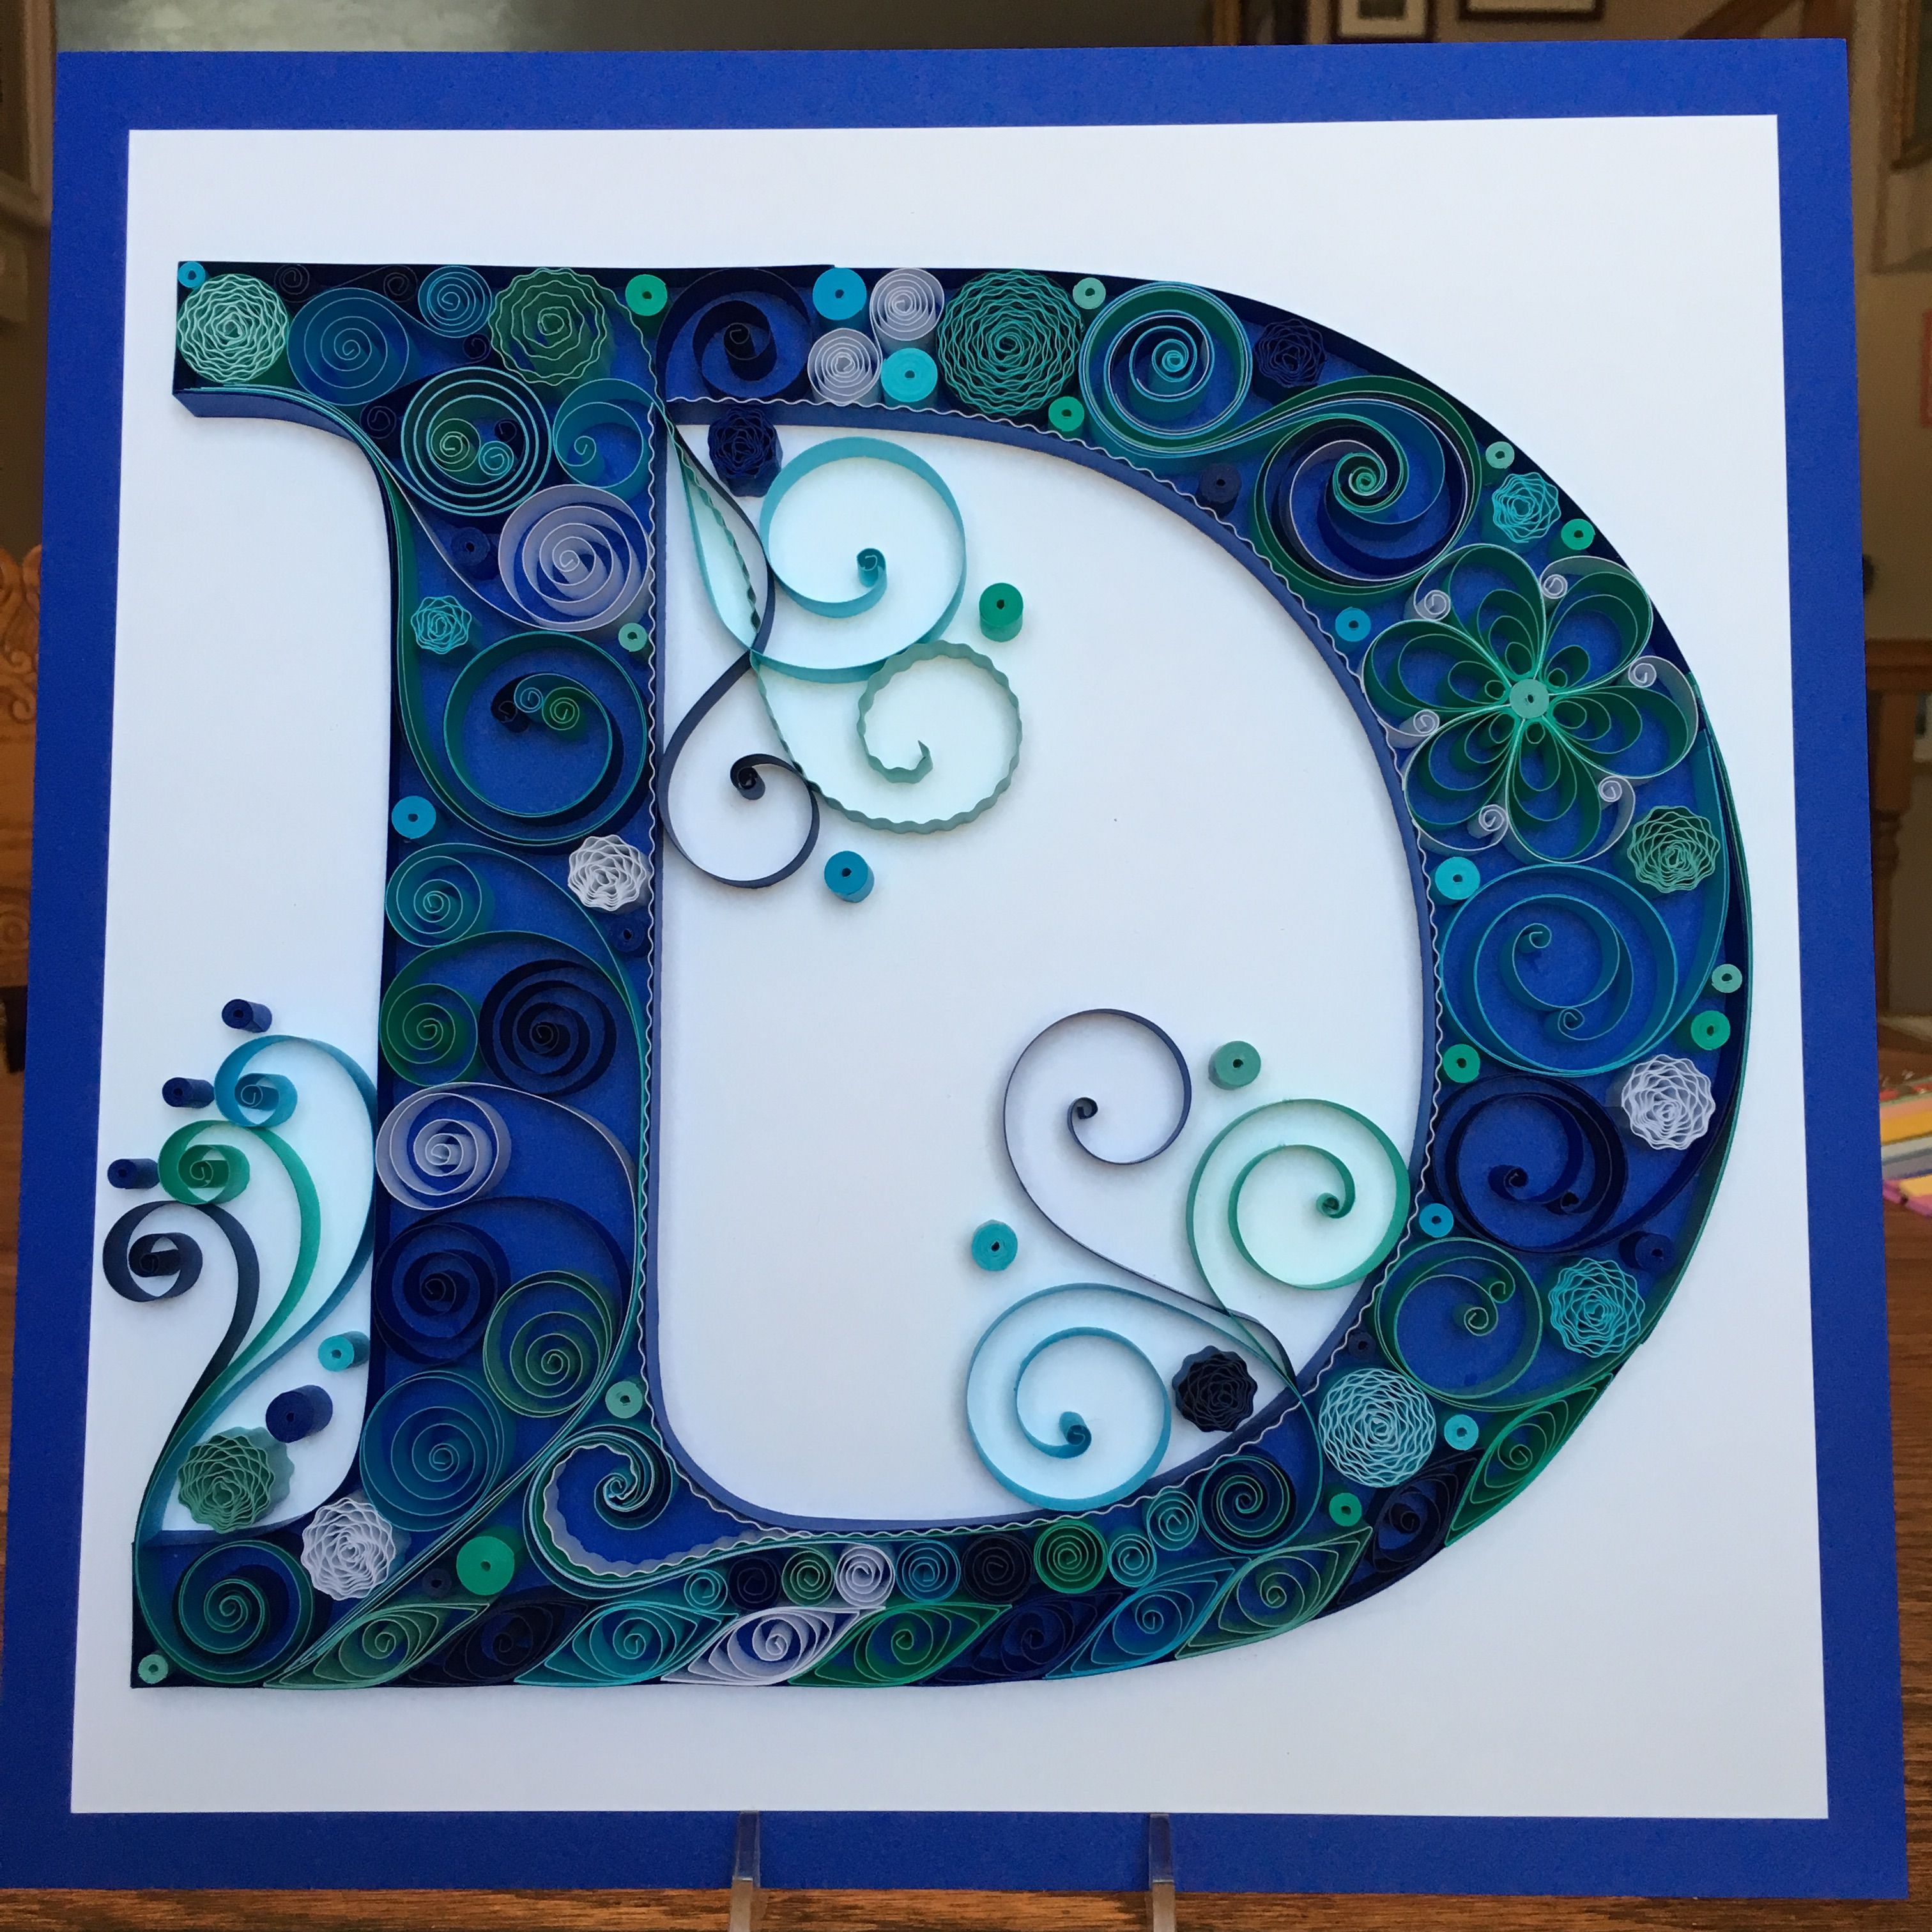 31c130fa6fb2c0407416b57340072b83 Quilling Letter Template D on